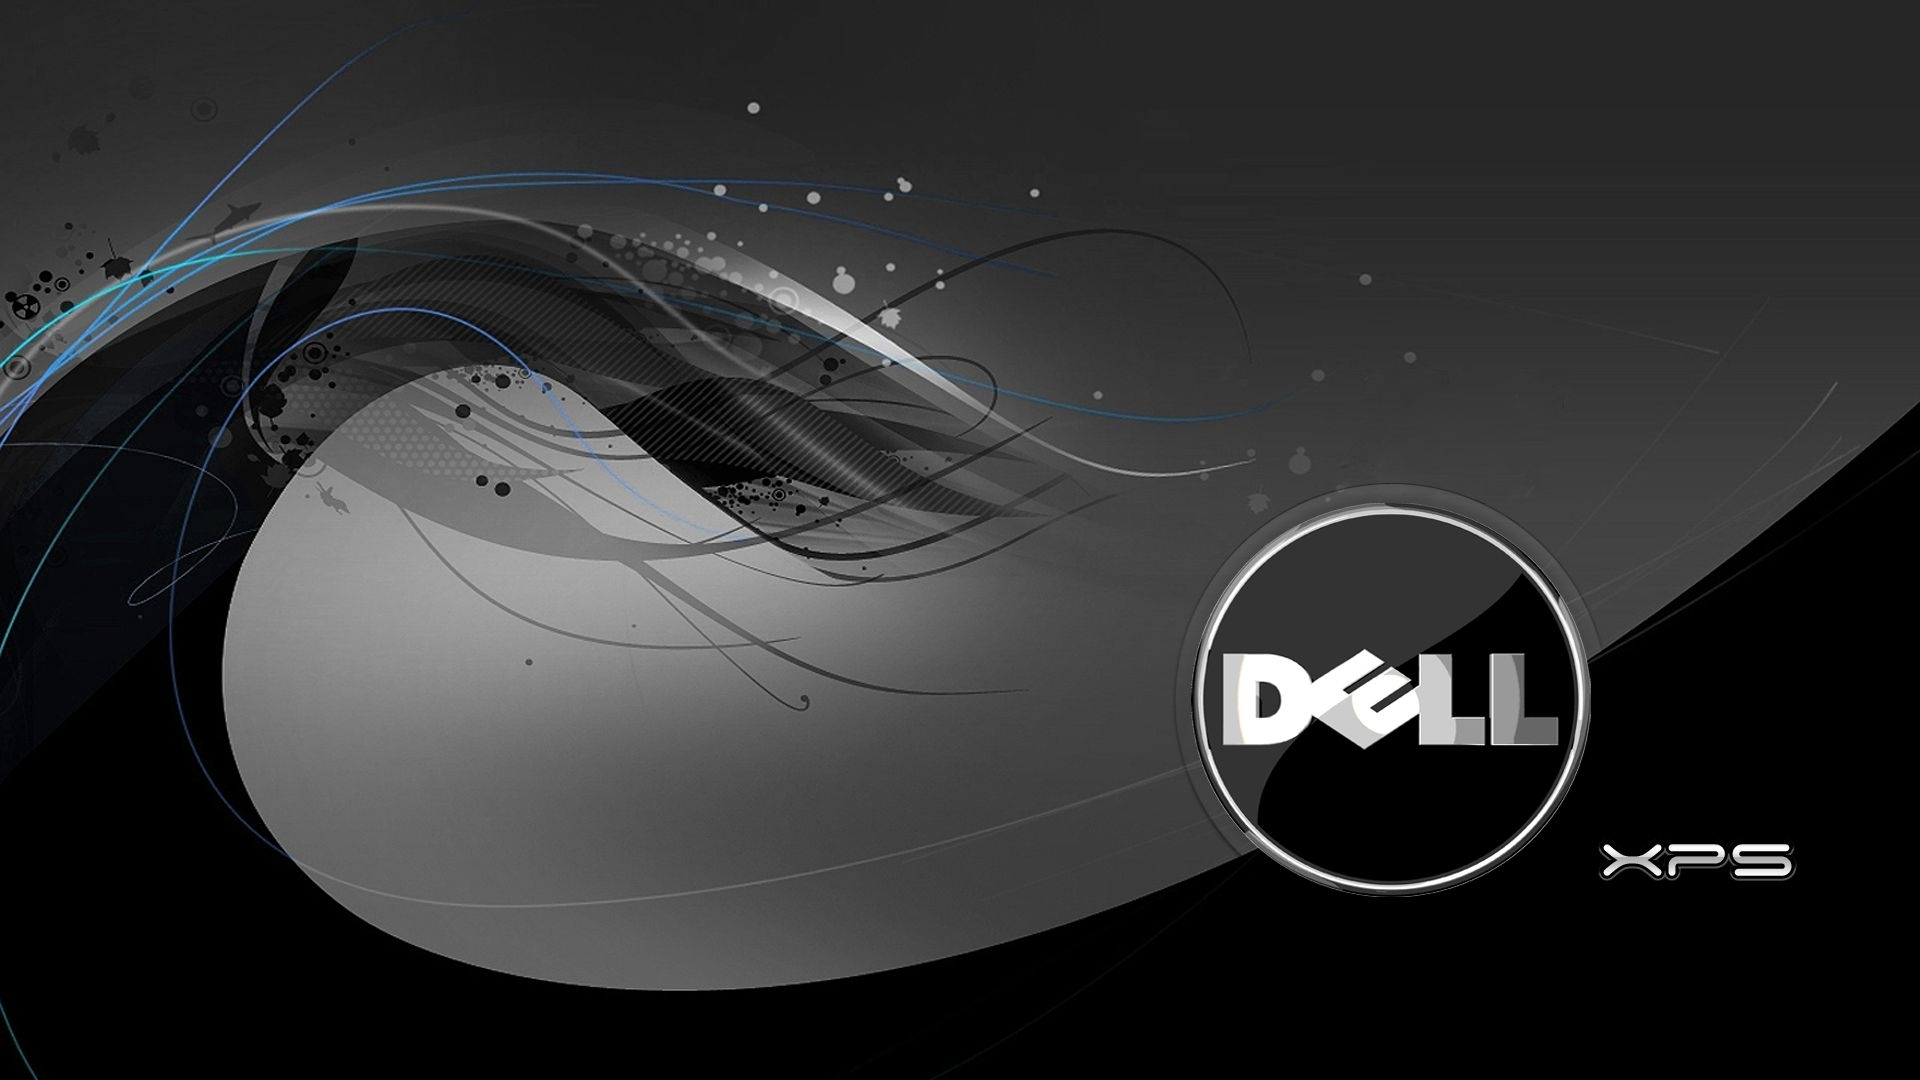 10 Most Popular Wallpaper For Dell Laptop FULL HD 1920×1080 For PC Desktop